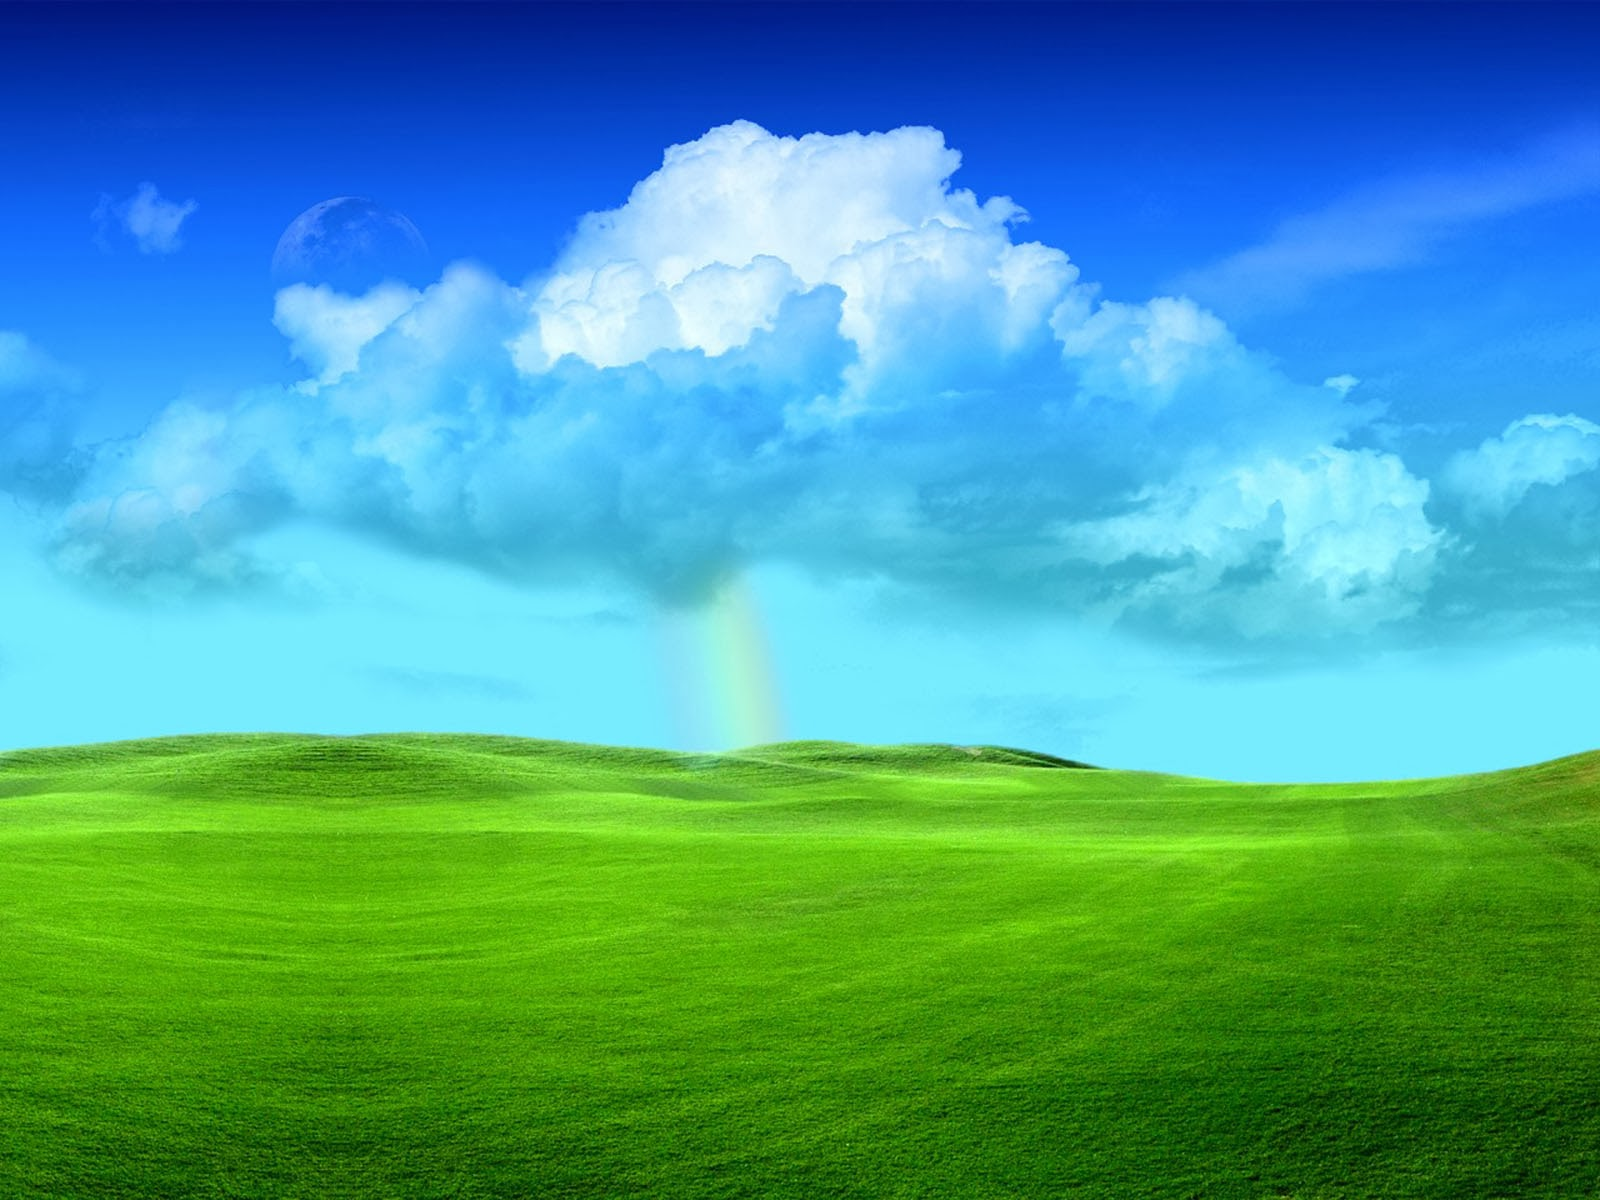 wallpapers windows vista bliss wallpapers